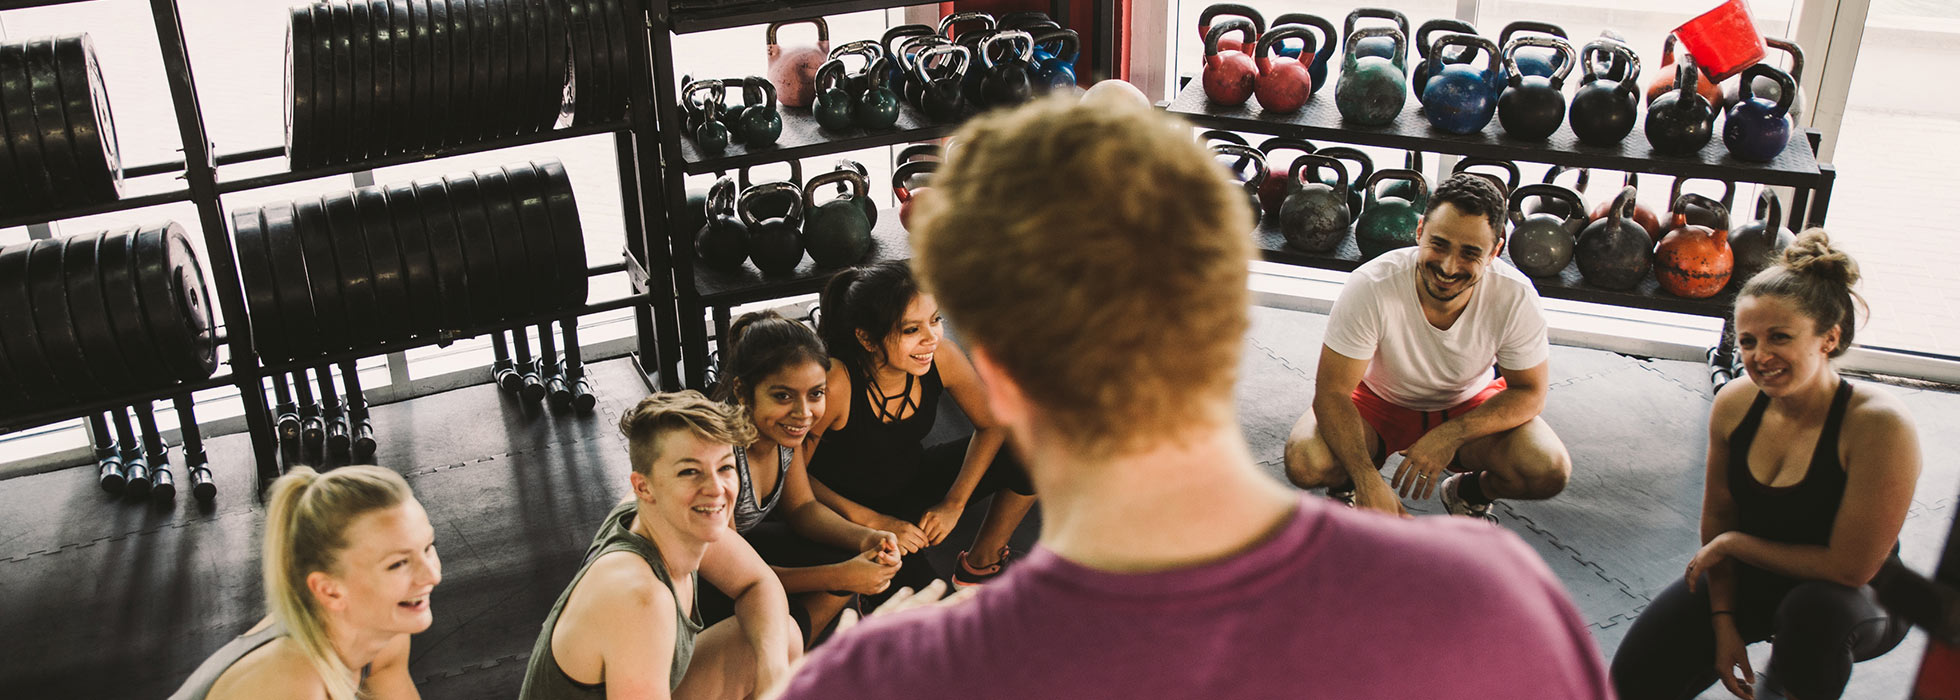 Top 5 Best Gyms To Join Near St. James